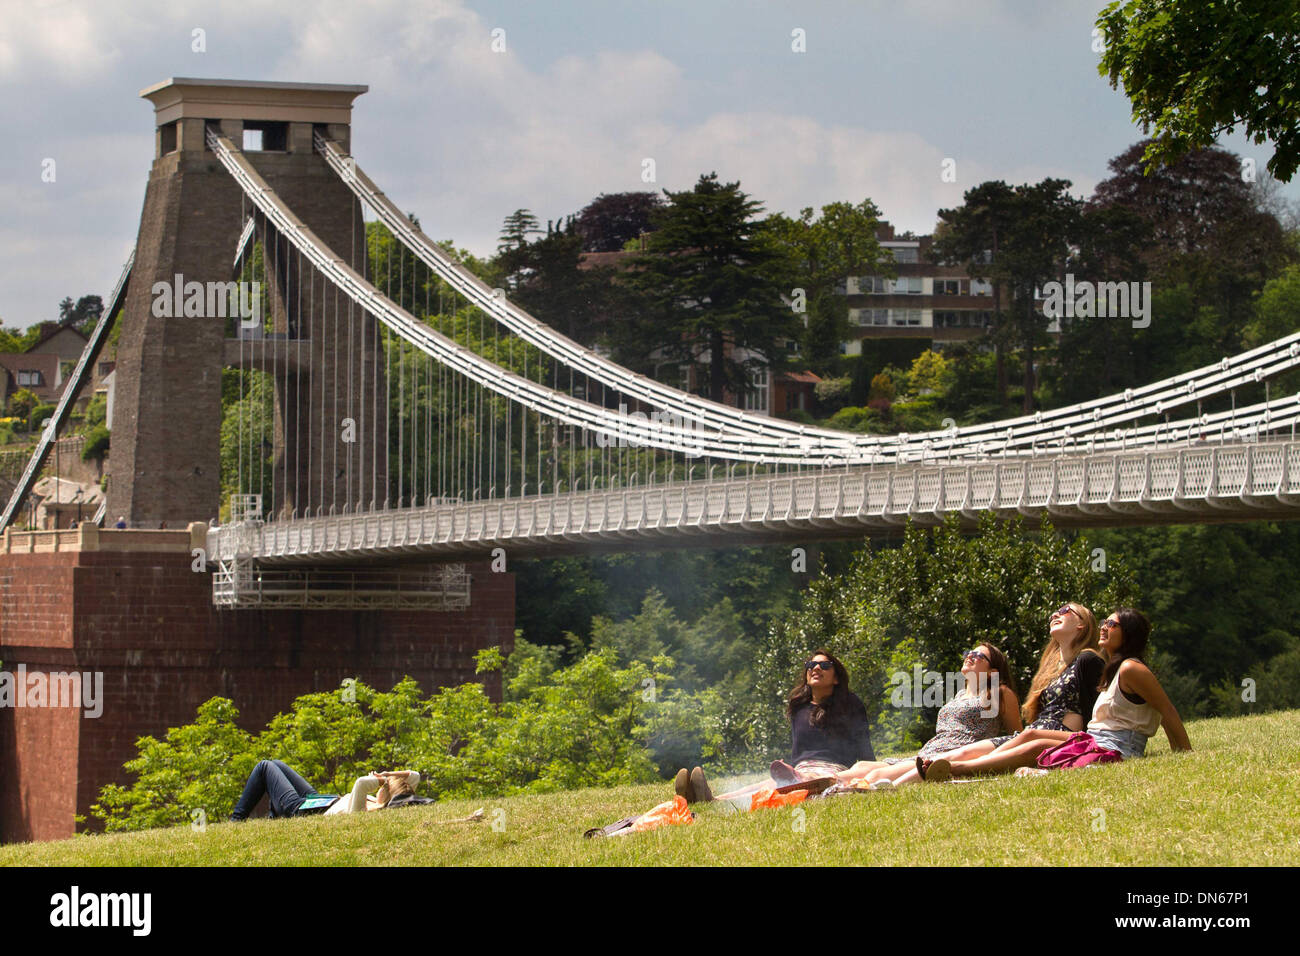 Students make the most of the hot weather in front of Clifton Suspension Bridge, Bristol - Stock Image